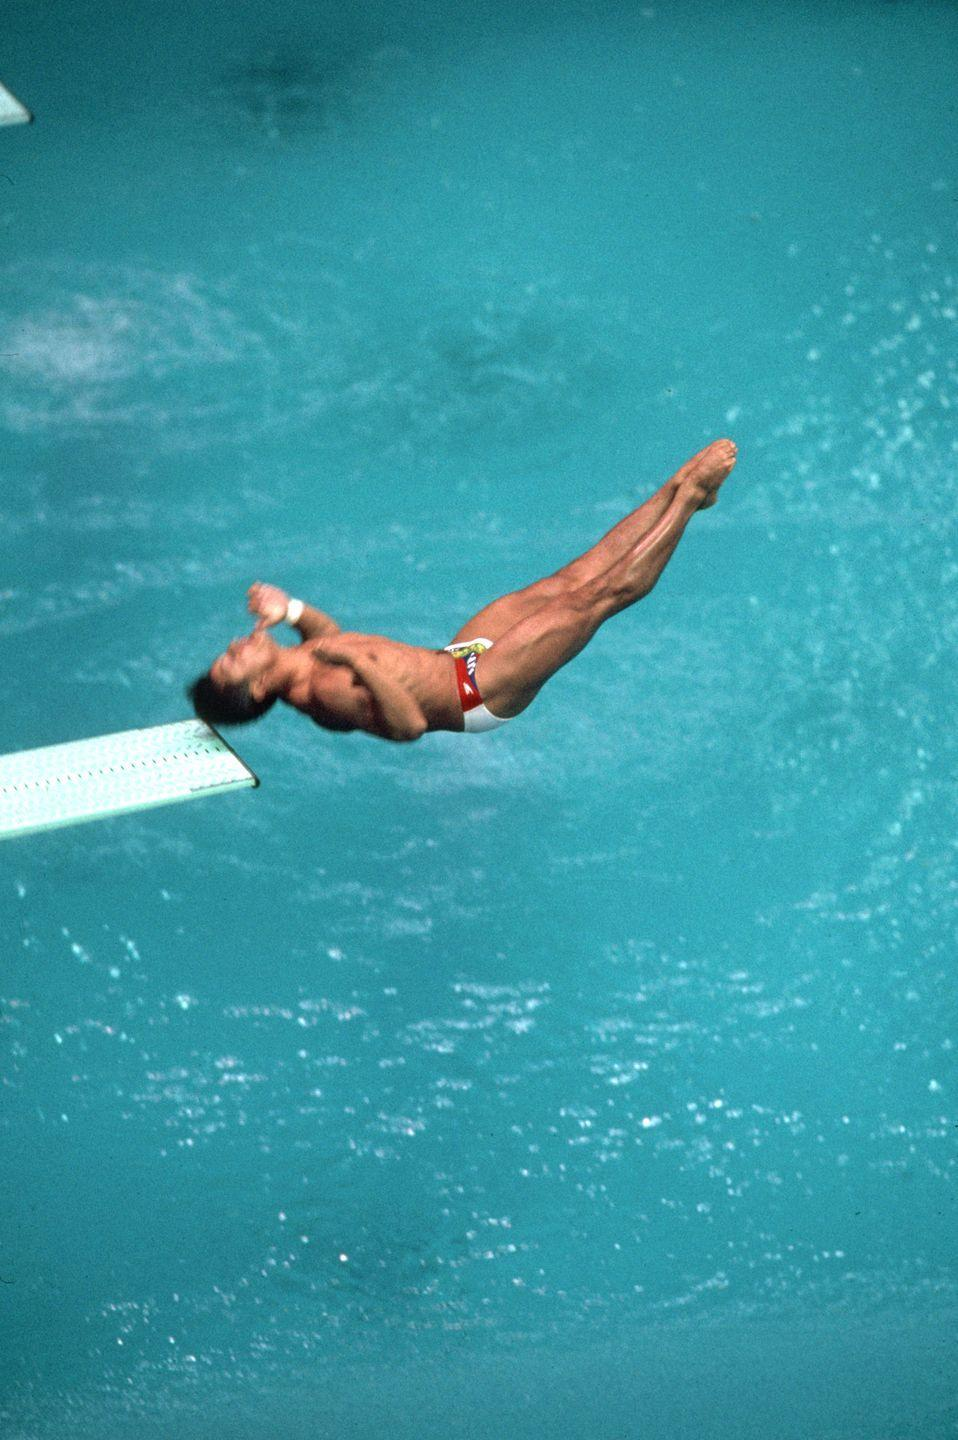 <p>In preliminary competition, U.S. diver Greg Louganis smacked his head on the diving board, suffering a concussion and a 2-inch scalp wound. But a day later, he returned to competition, stitches and all, to snag gold. </p>